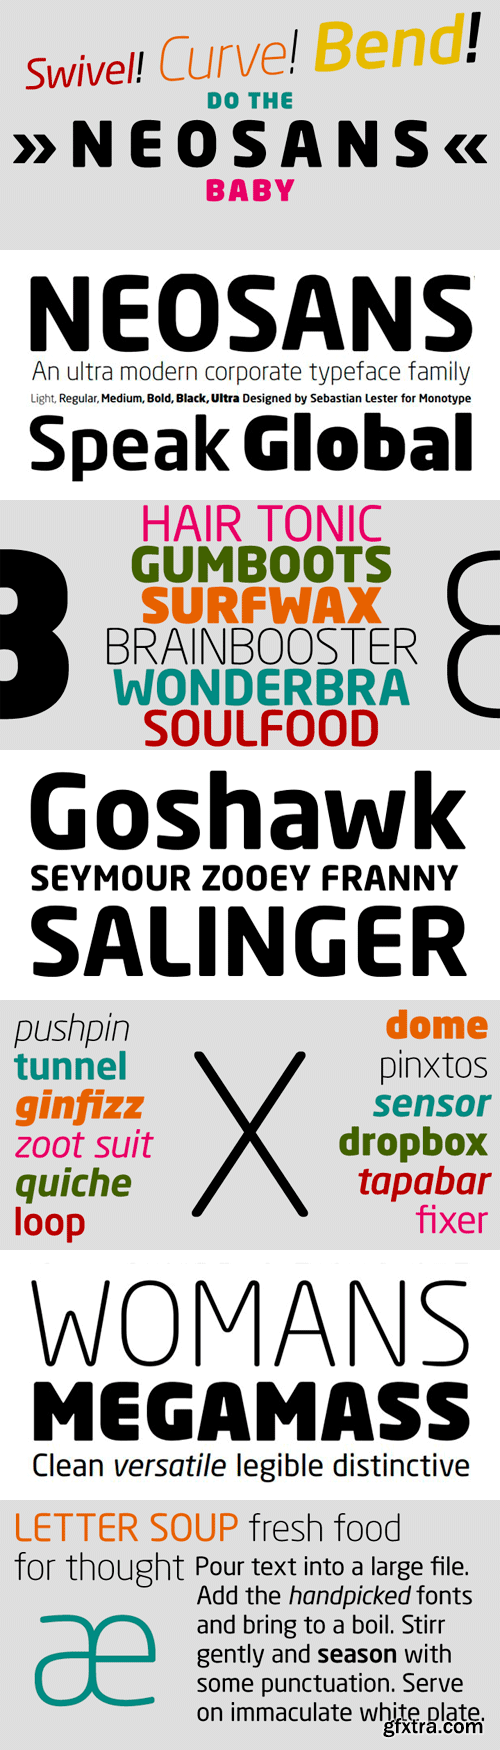 Neo Sans W1G Font Family - 12 Fonts for €1060